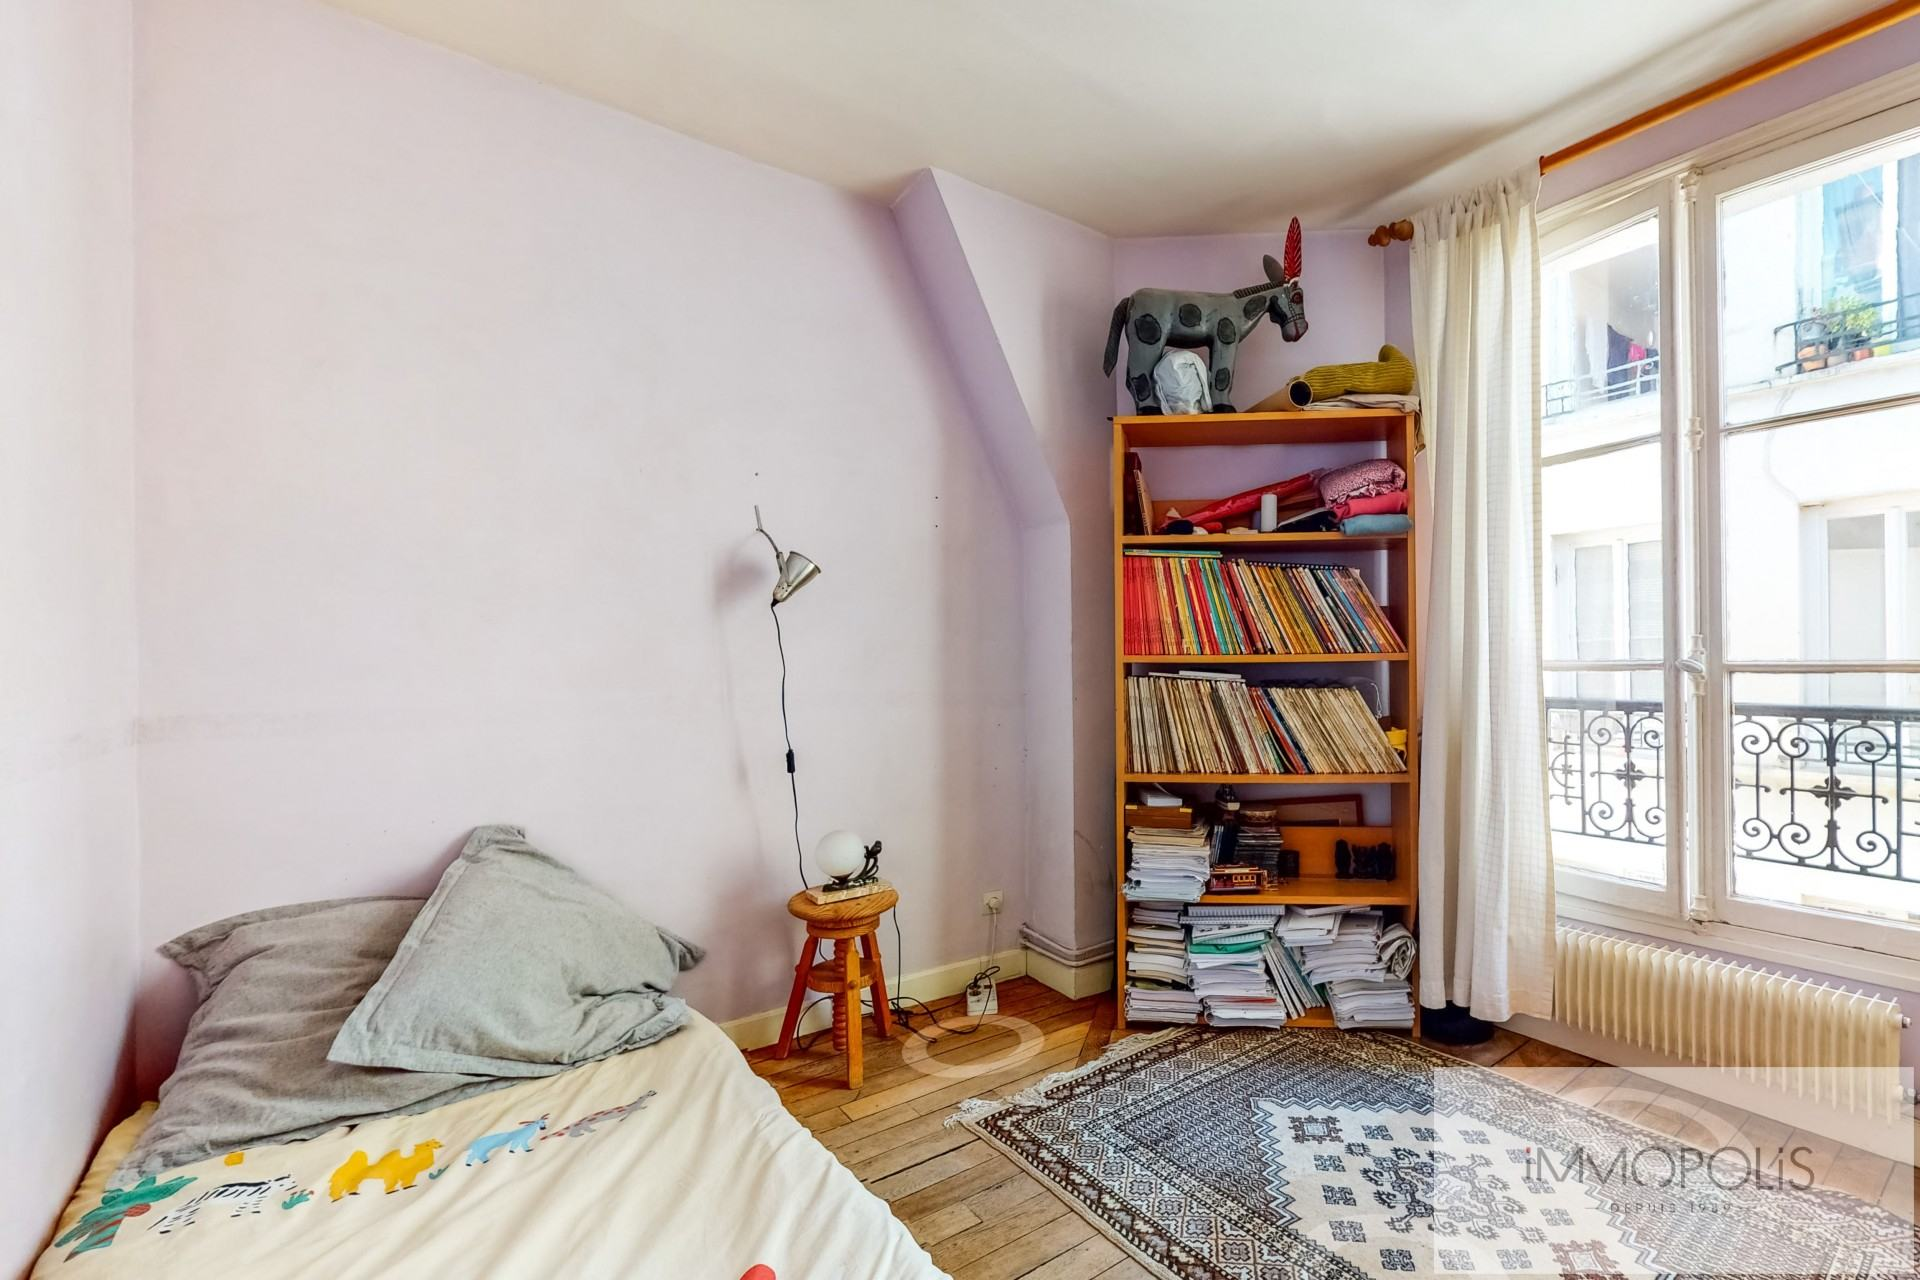 Appartement atypique, plein de charme, Rue Richard Lenoir – Paris XIème 7